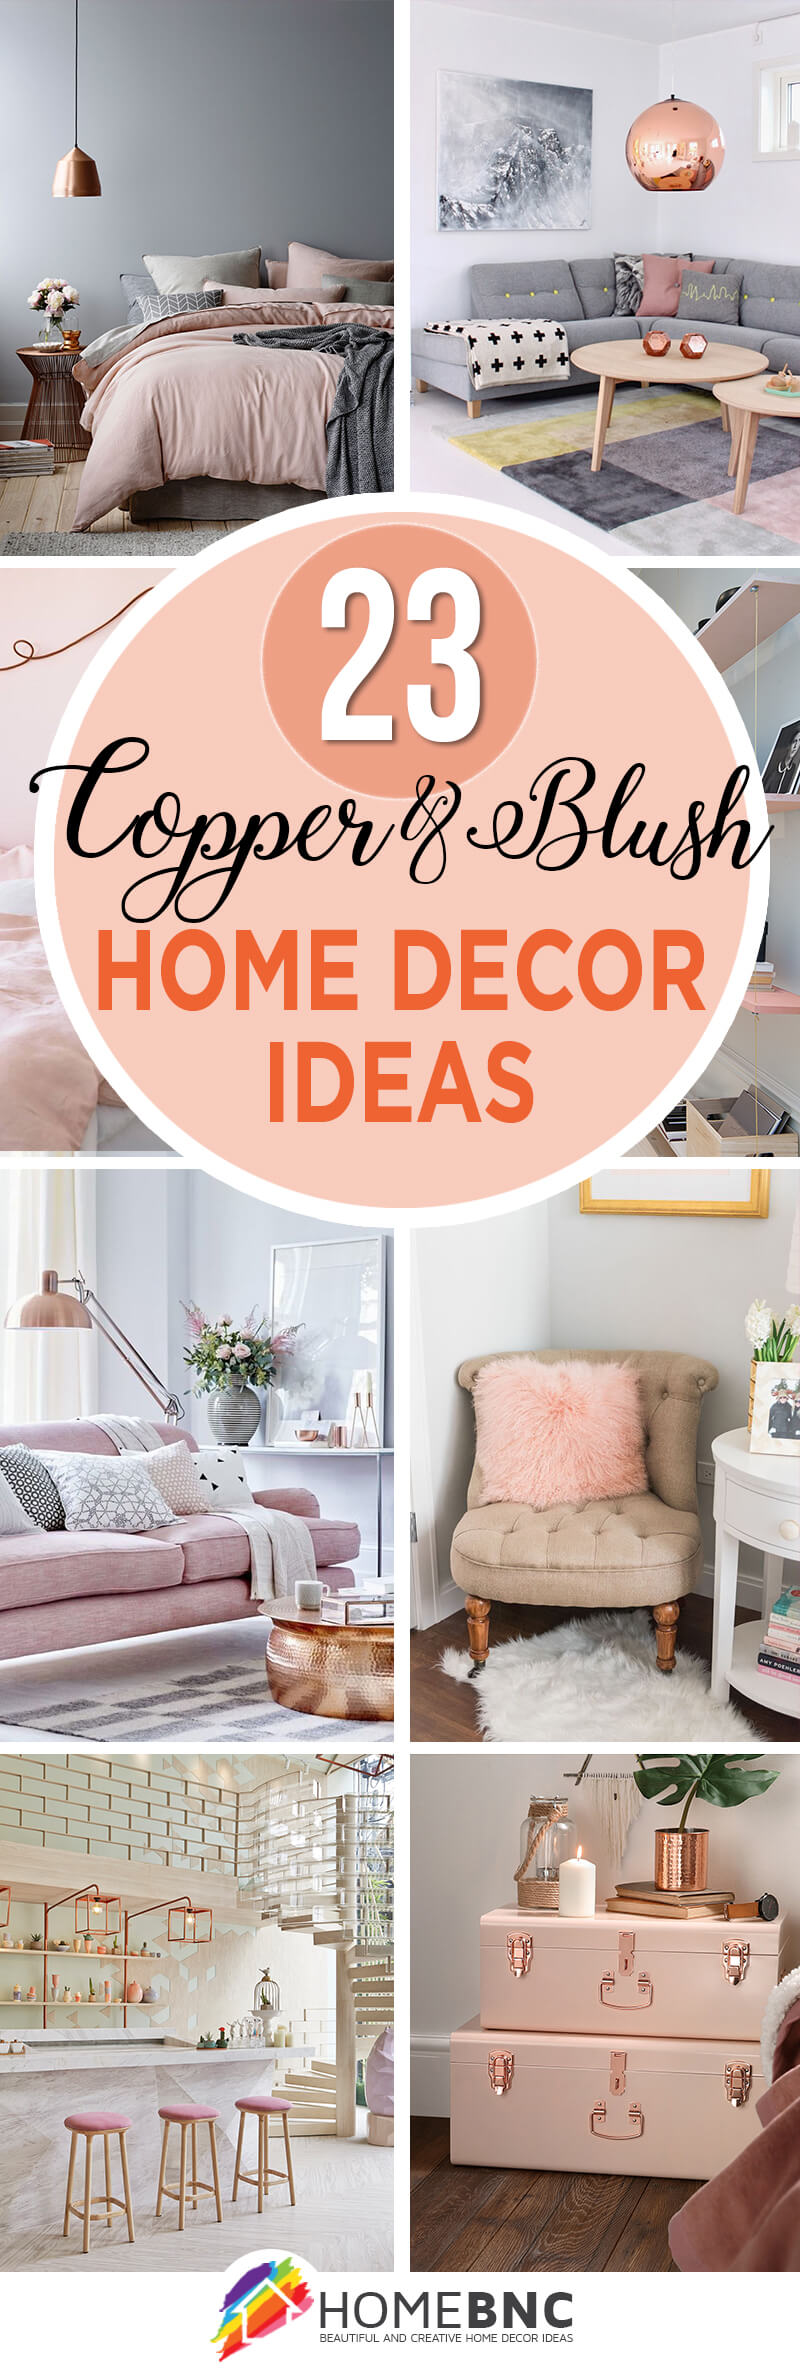 Captivating Copper And Blush Home Decor Ideas